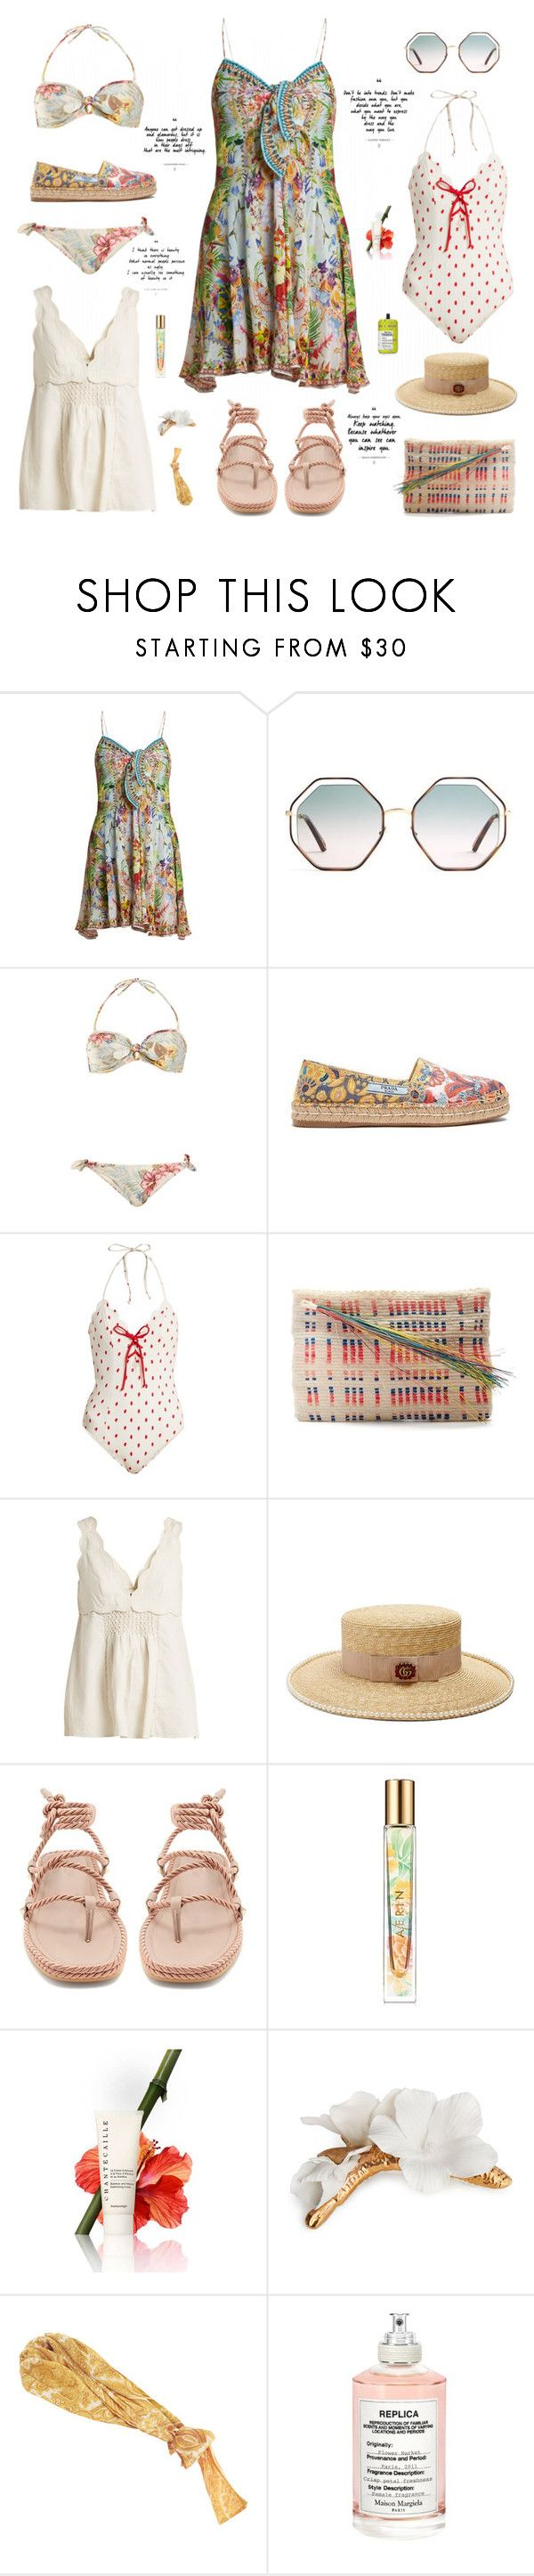 """Aloha"" by sue-mes on Polyvore featuring Camilla, Chloé, Zimmermann, Prada, Marysia Swim, Sophie Anderson, Isabel Marant, Gucci, Valentino and Estée Lauder"